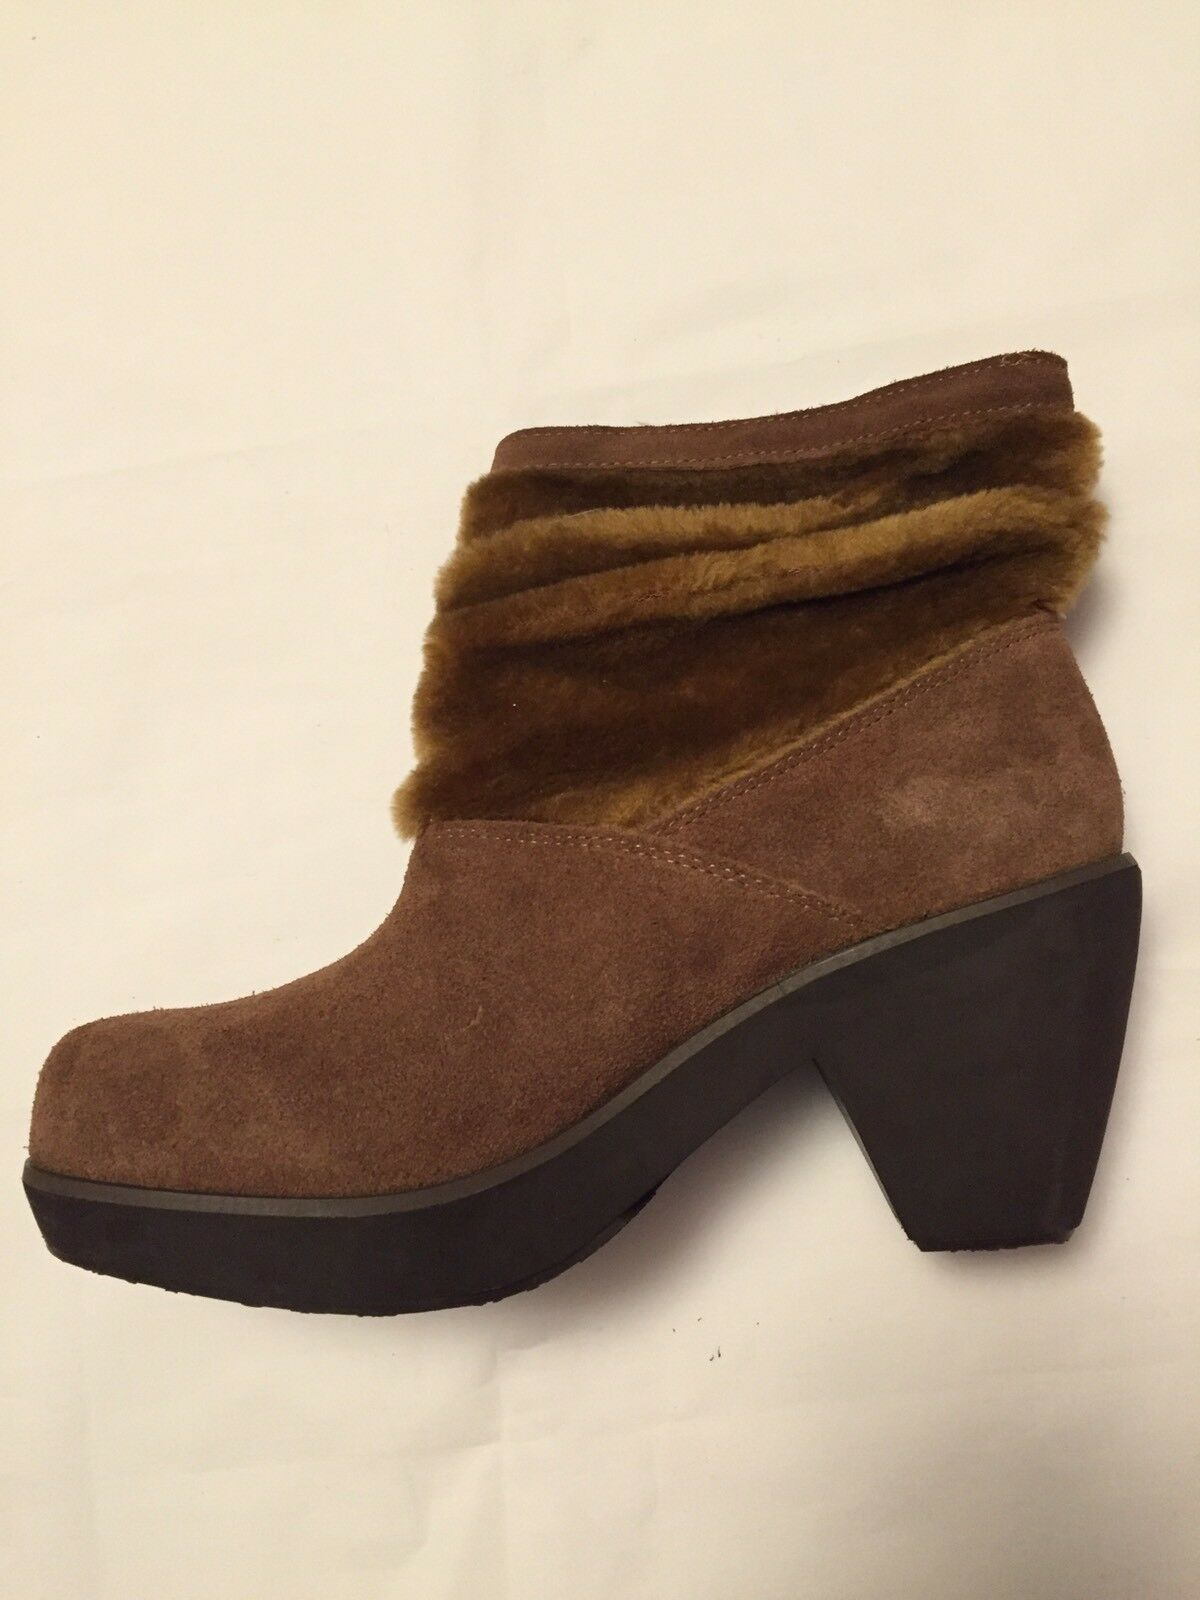 Size 7 Ladies Womens Skechers Disco Bunny Fur Out Trimmed Slouch Boots Chestnut